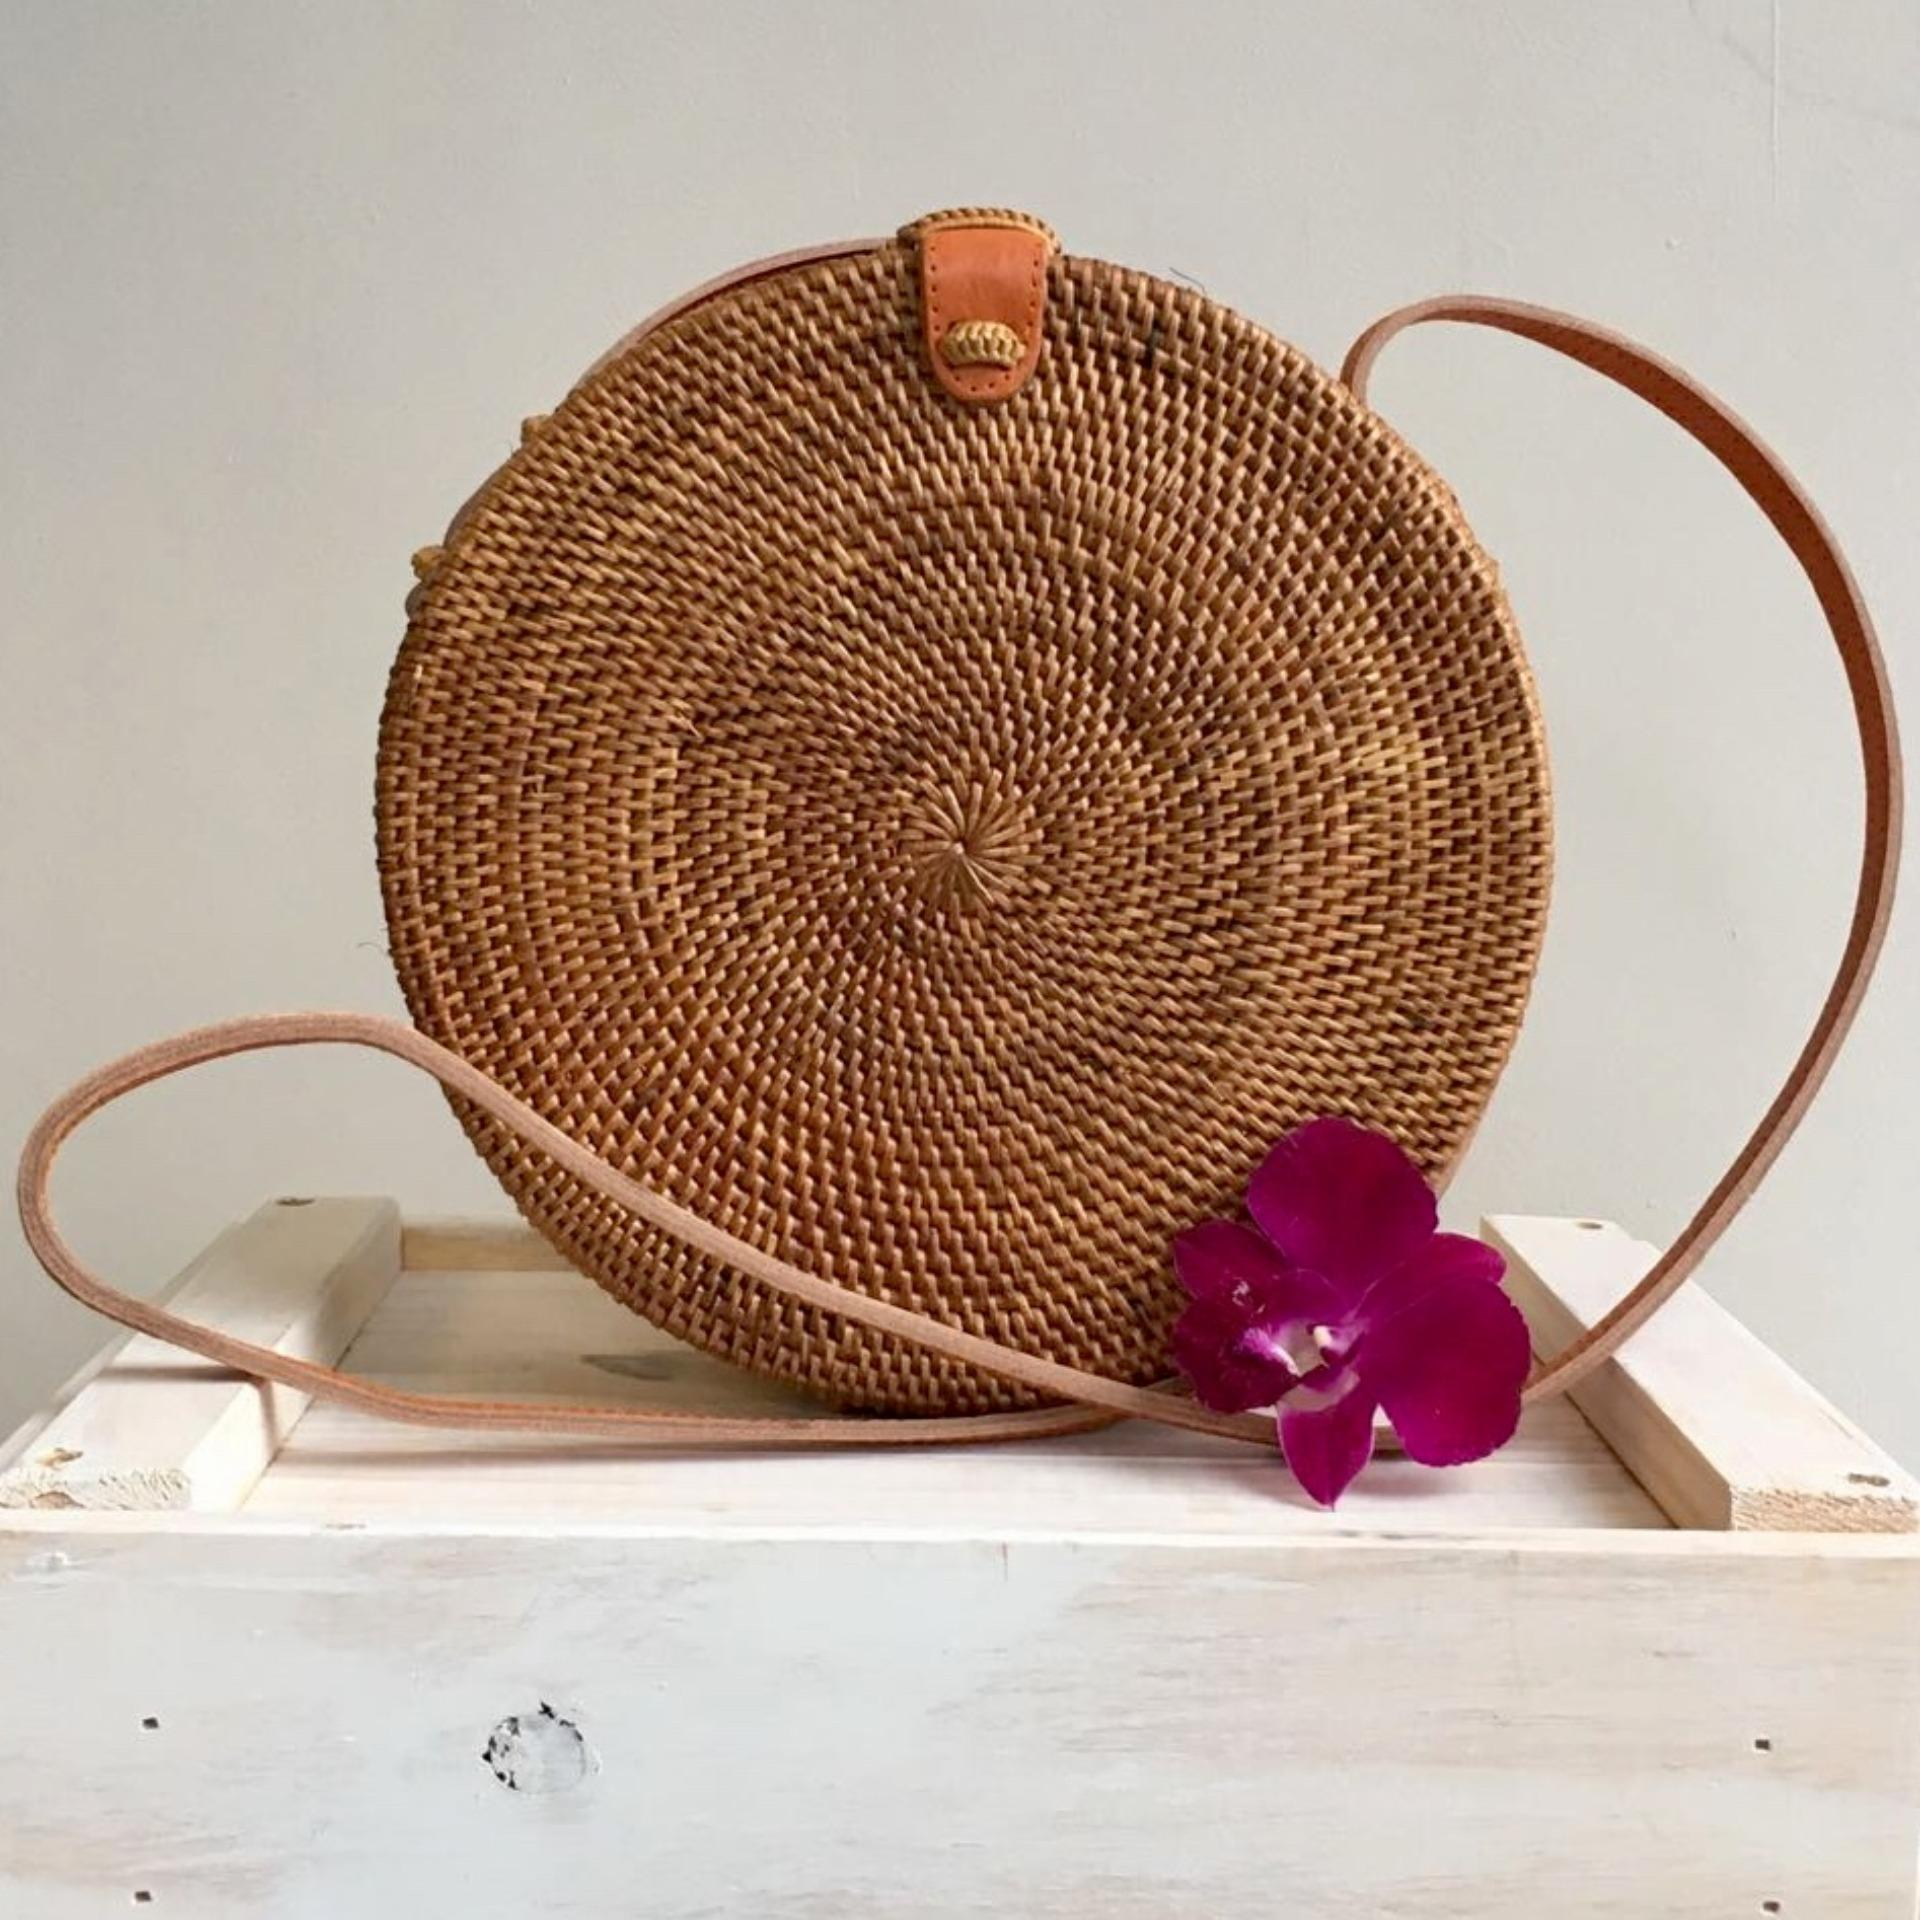 Discounted Bulan 20 Cm Handwoven Rattan Round Bag Metal Clasp Batik Lining Shoulder Bag Cross Body Bag Summer Bag Handbag Leather Sling Strap Boho Chic Ata Bag Vintage Style Beach Bag